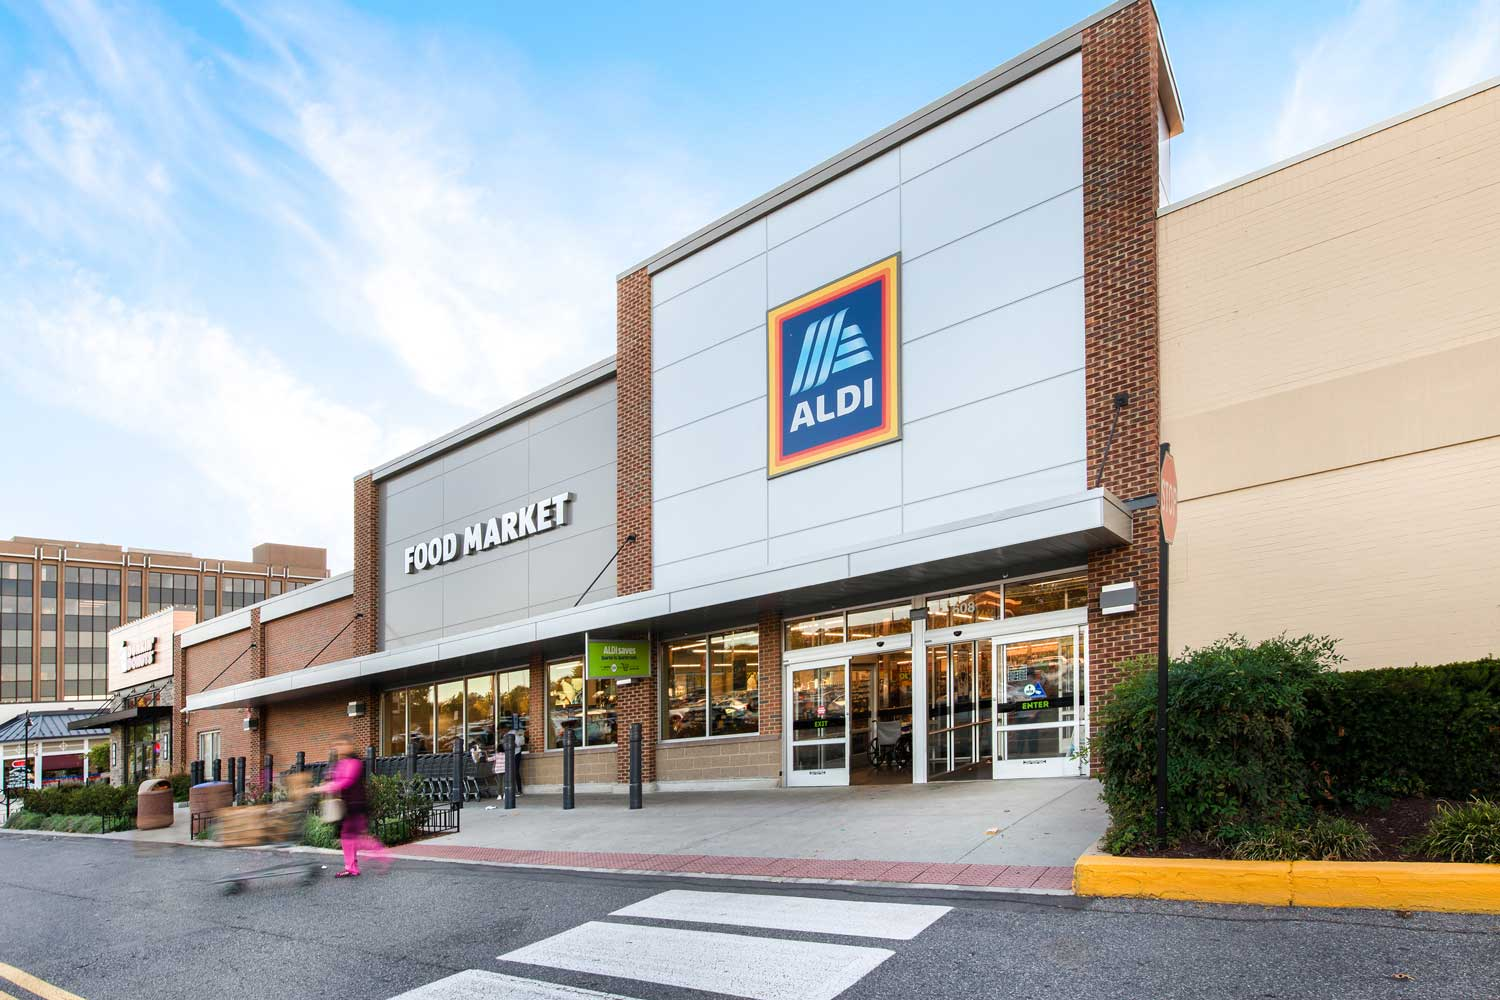 Aldi is 5 minutes from Governor Square Apartments in Gaithersburg, MD